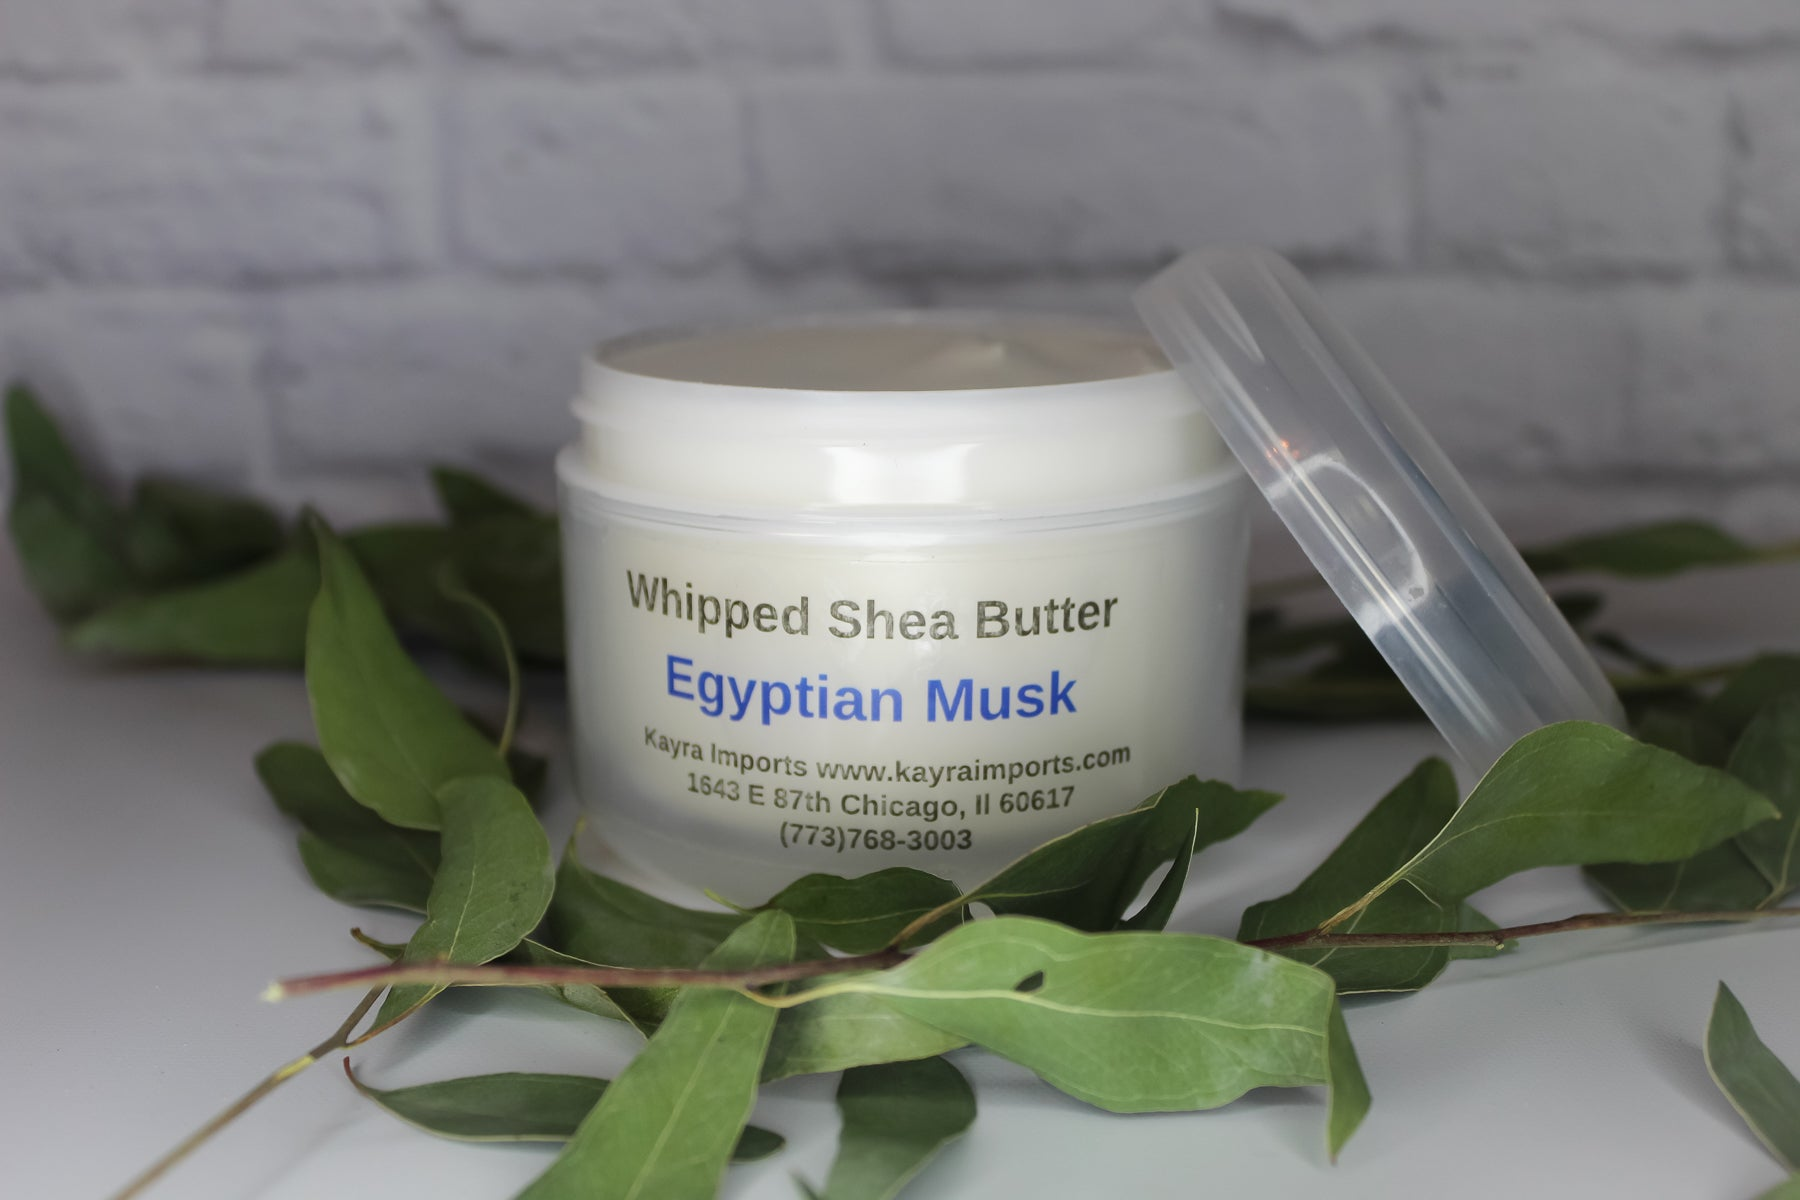 Egyptian Musk Whipped Shea Butter